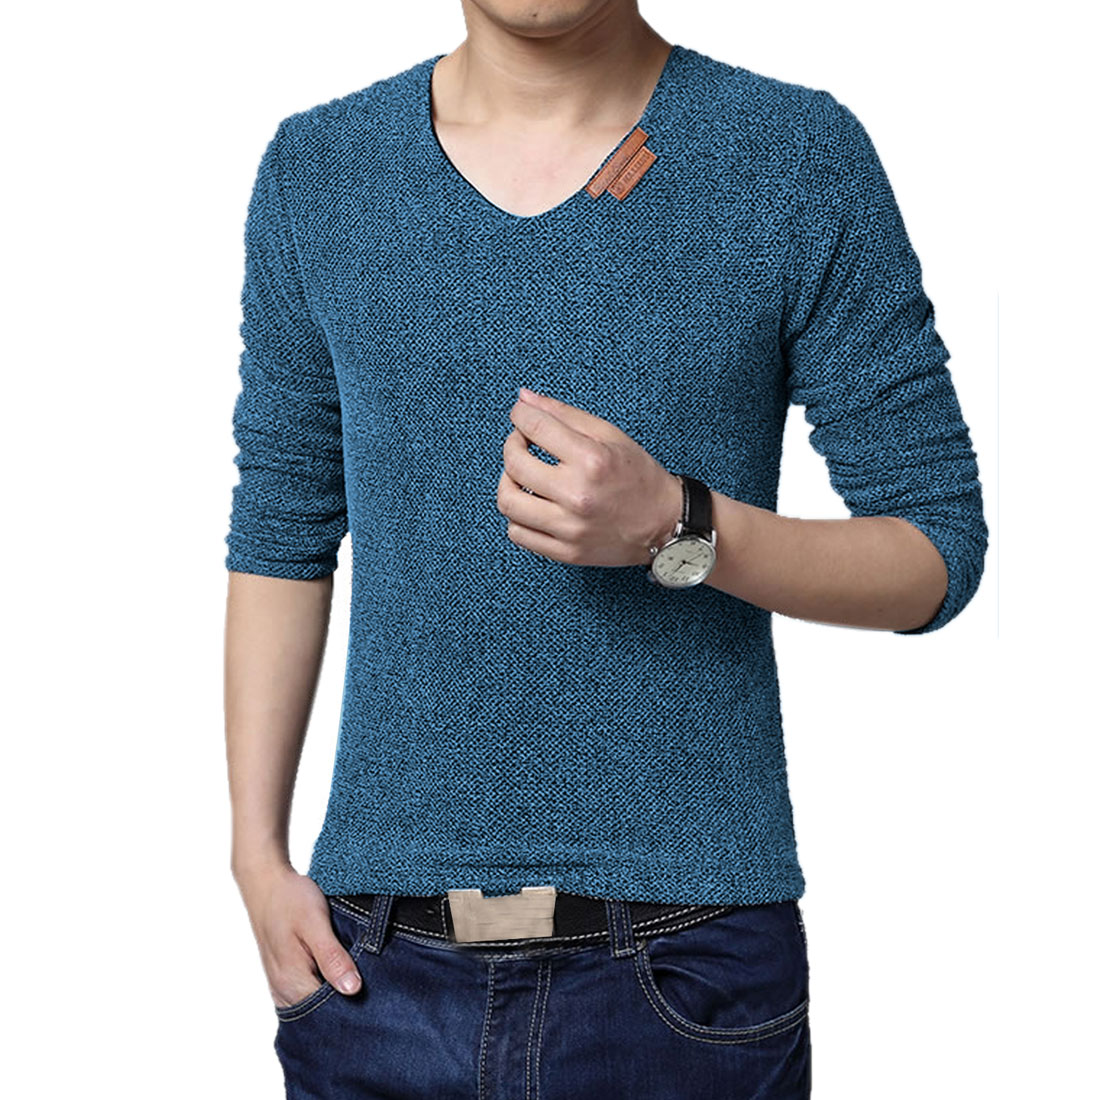 Back to College Gifts & Accessories | Azzuro Men's Long Sleeve Knitted Panel Fleece Lined T-Shirt (Size M / 38)